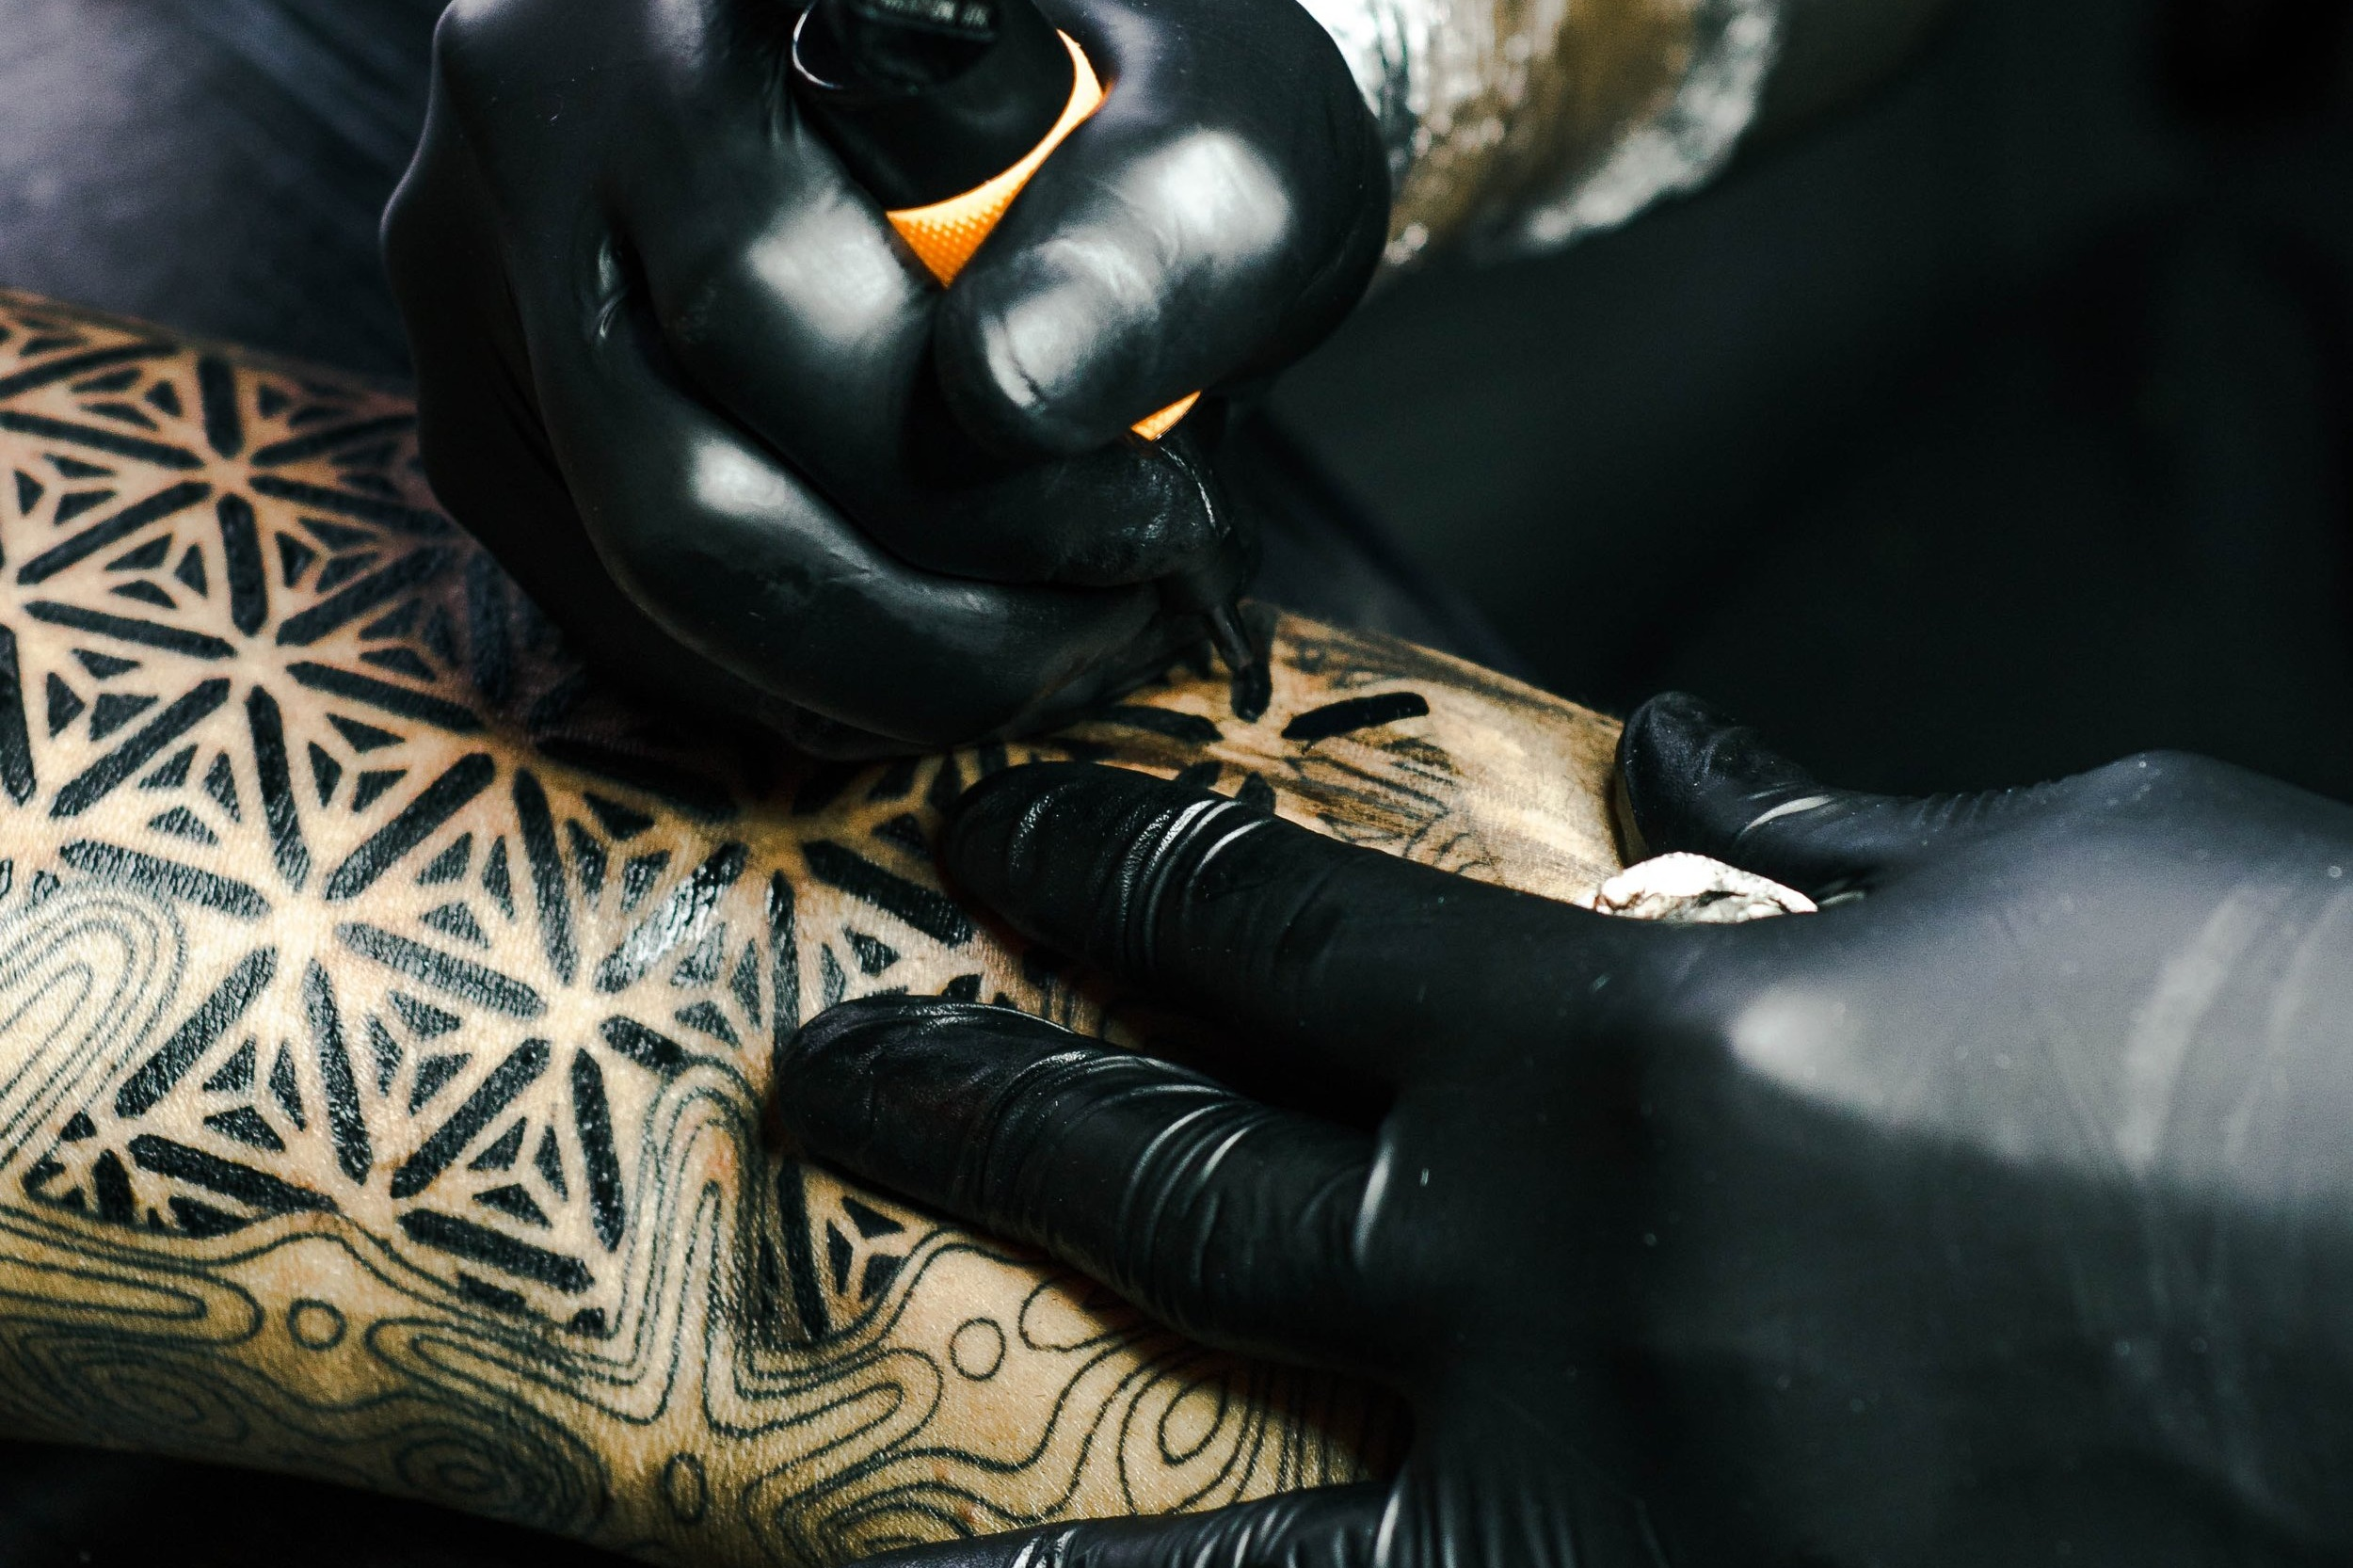 The appointment - What should you expect when you arrive for the tattoo? How can you work with your artist to create the best experience for both parties?